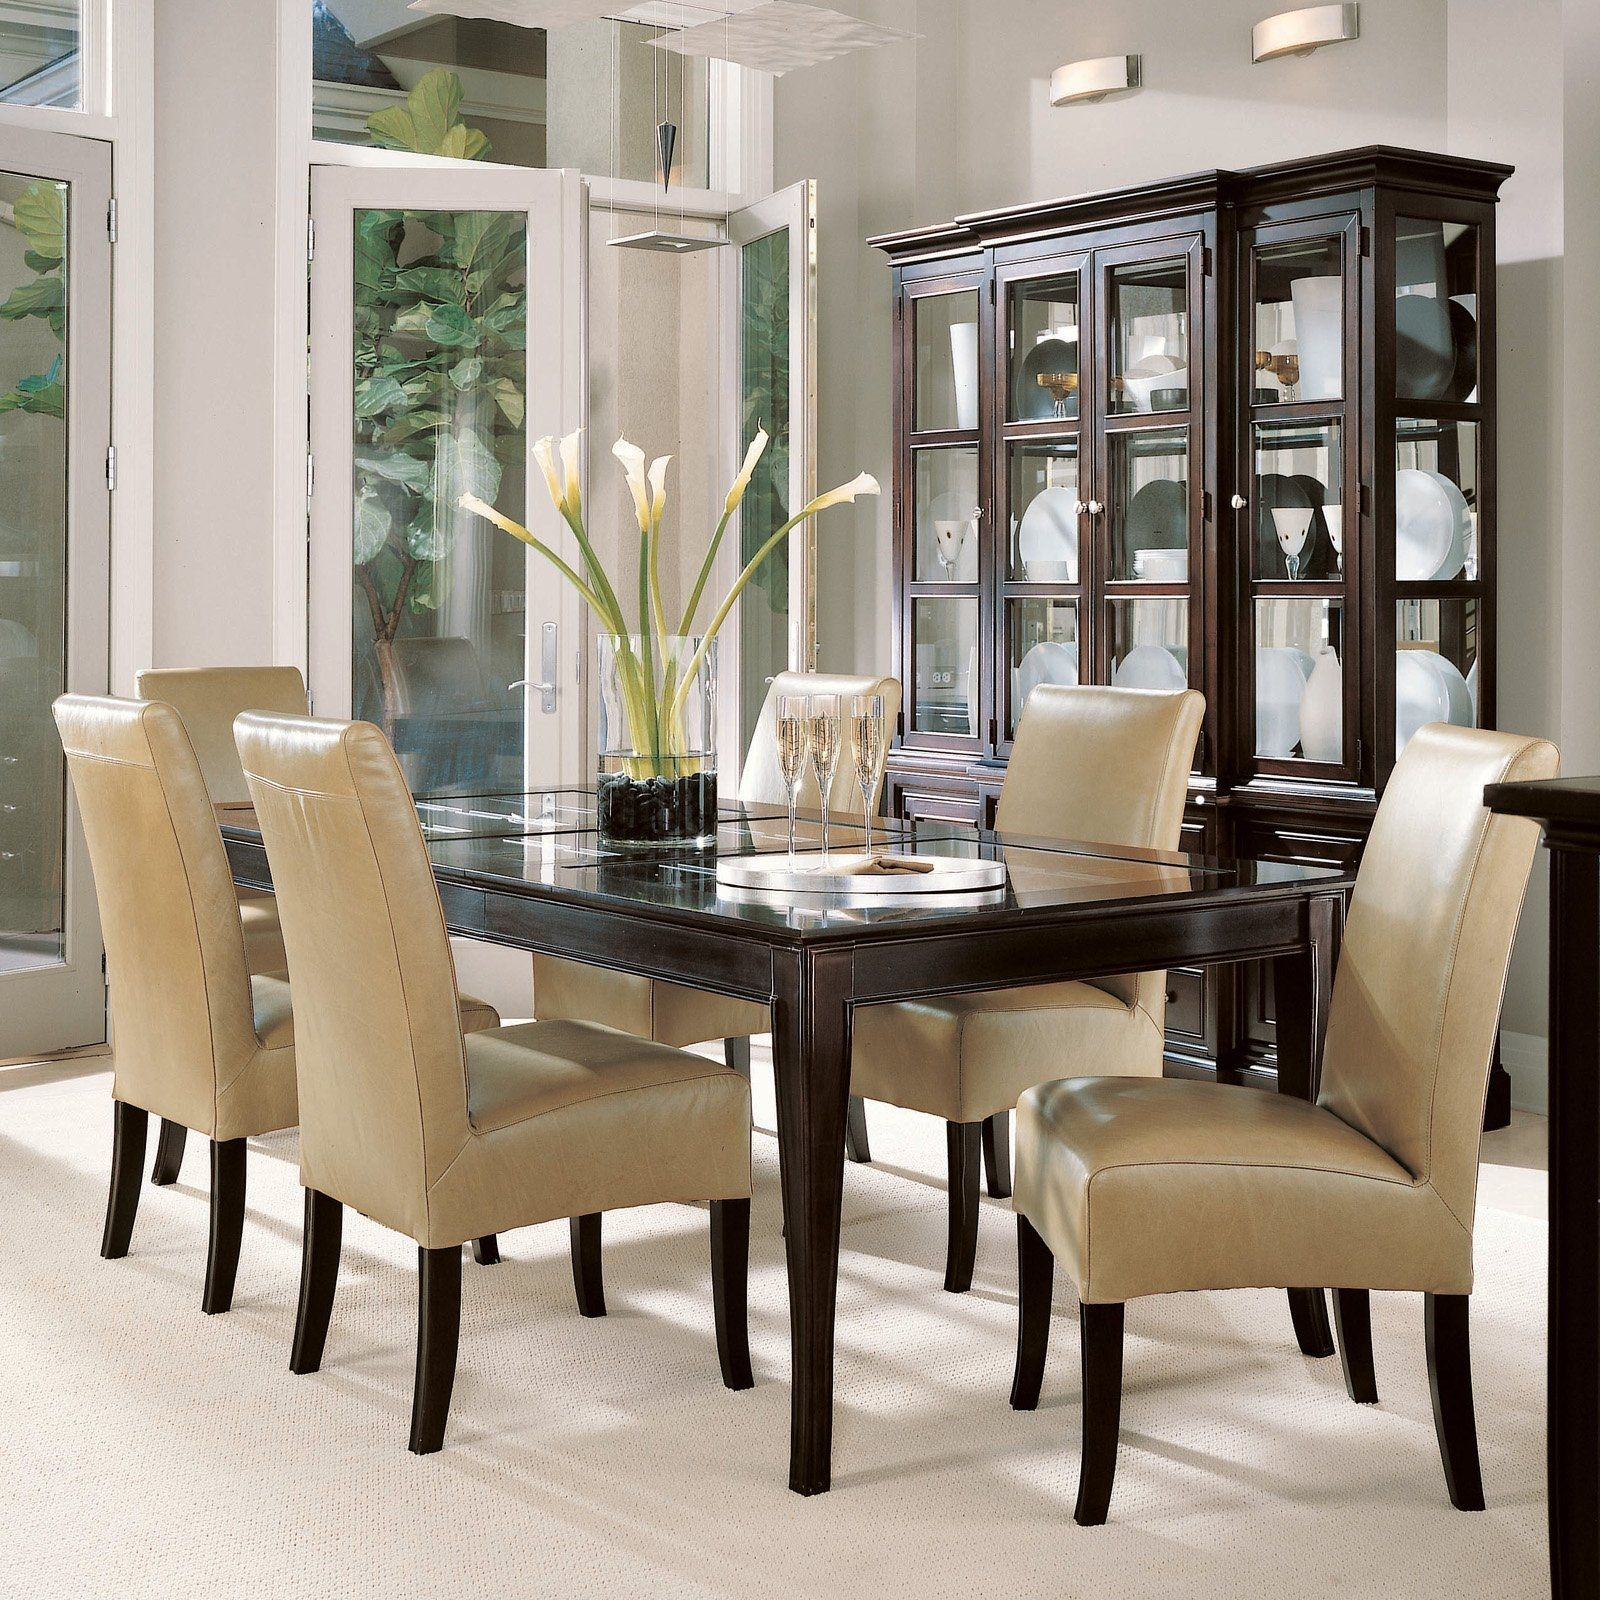 Dining Room Table With Cream Leather Chairs fmufpi